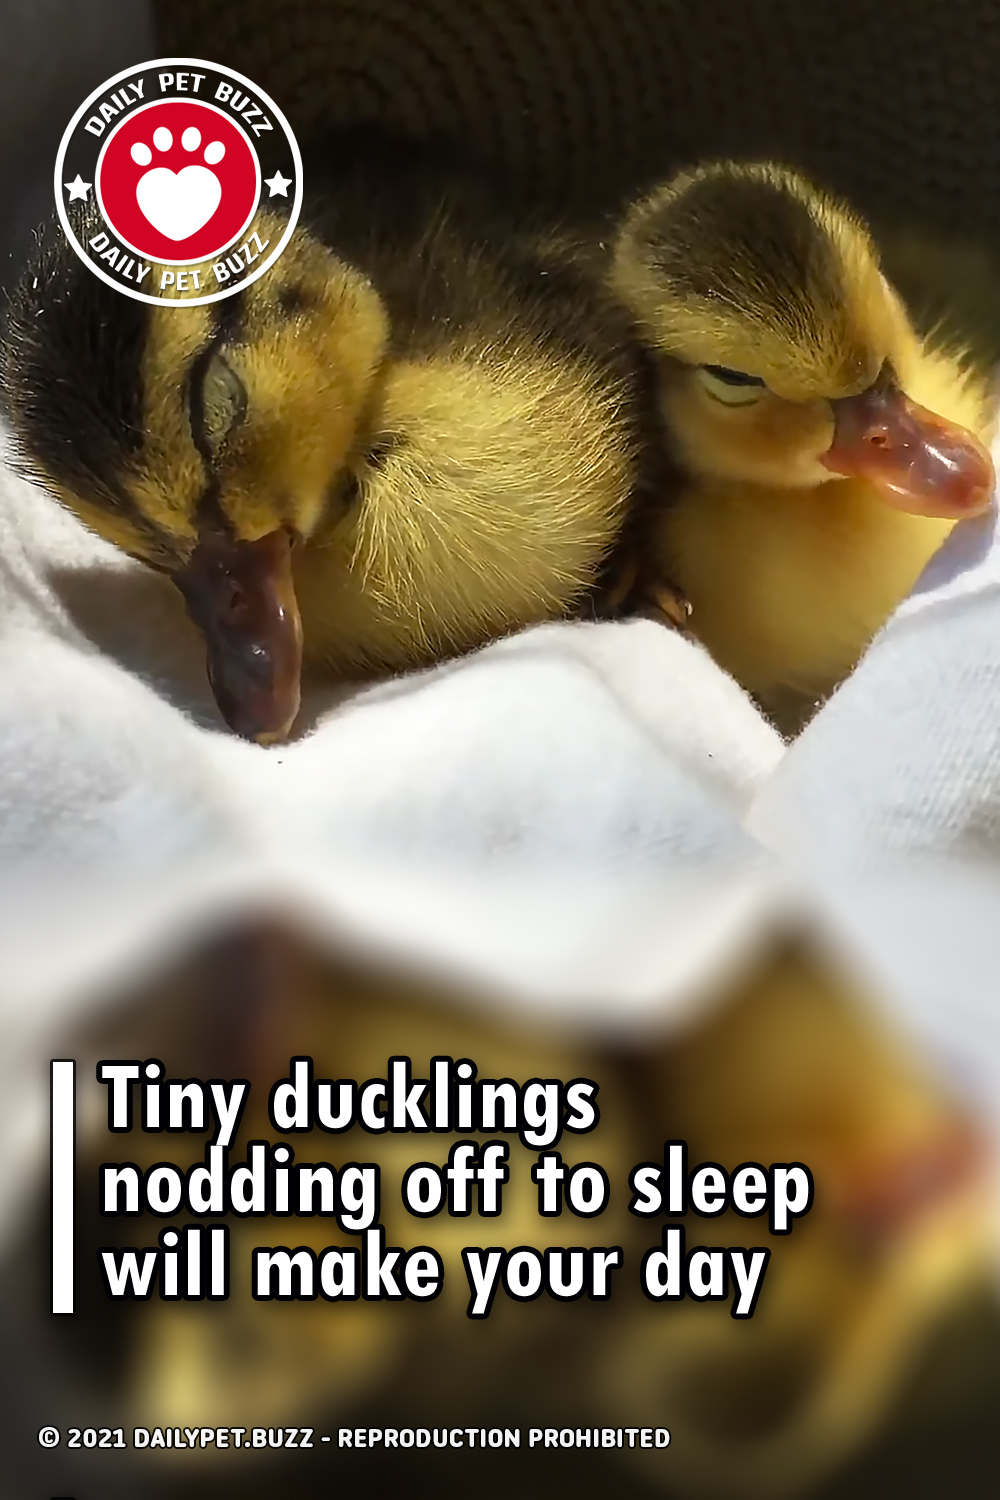 Tiny ducklings nodding off to sleep will make your day